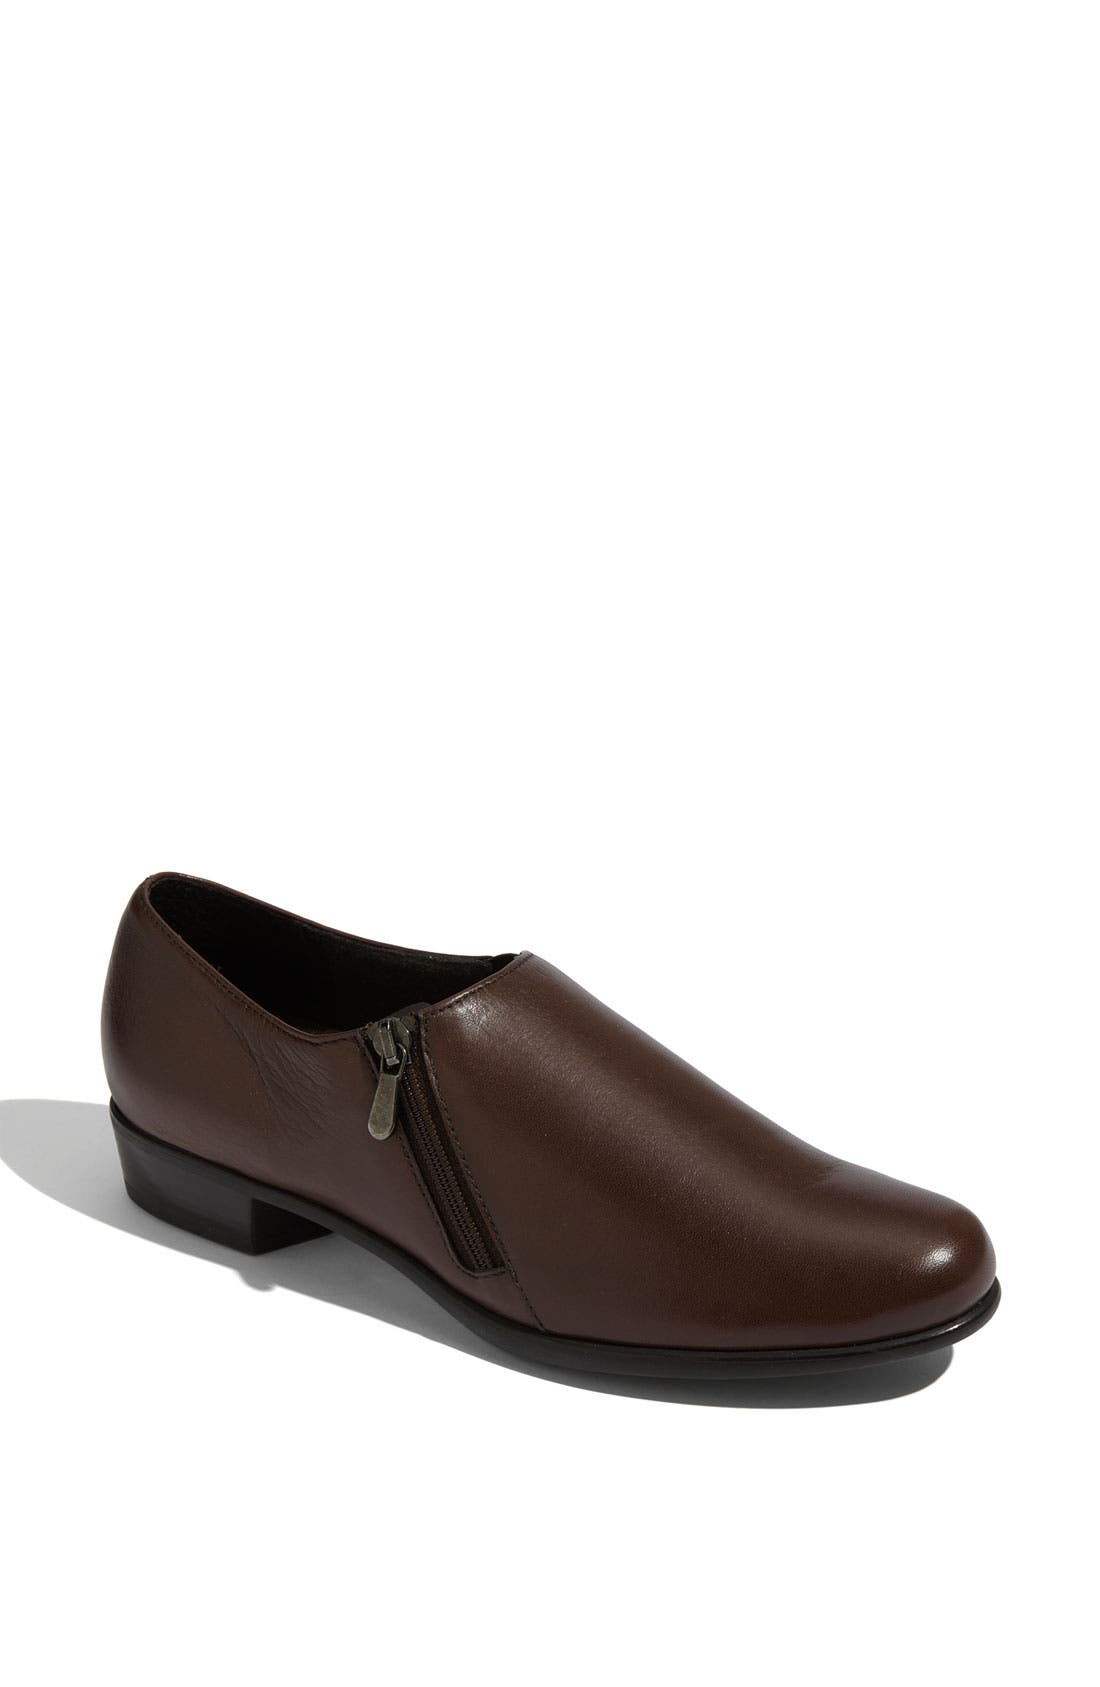 Alternate Image 1 Selected - Munro 'Derby' Loafer